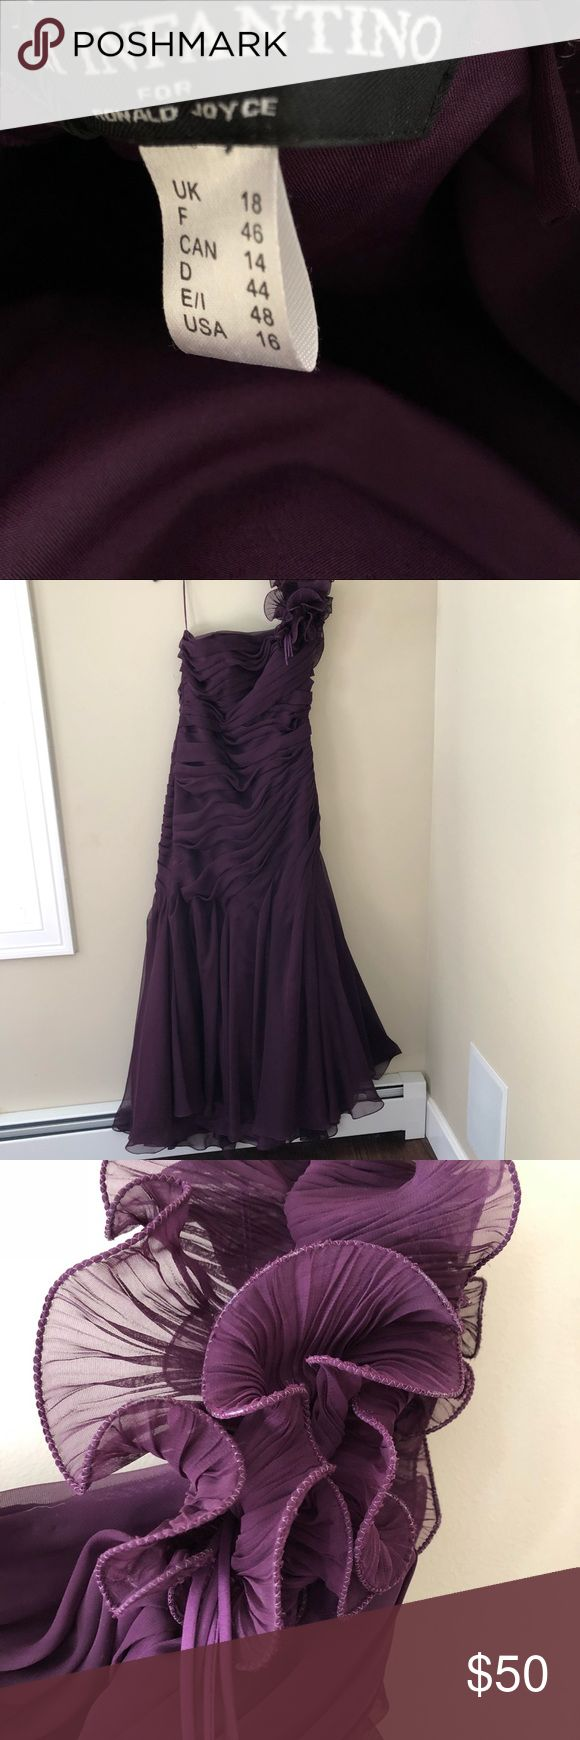 Beautiful NWT Aubergine Gown Size 16 This dress has never been worn and is new with tags.  It is strapless with a ruffled shoulder strap (a little loose and meant to hang down around the upper arm).  The rushing and buttons done the back coupled with the slight train make this a perfect Prom or Black Tie affair dress.  The color is absolutely stunning.  Back Zip (hidden by buttons).  Fabric has little to no give and there is pliable boning in the bodice Veni Infantino Dresses Strapless